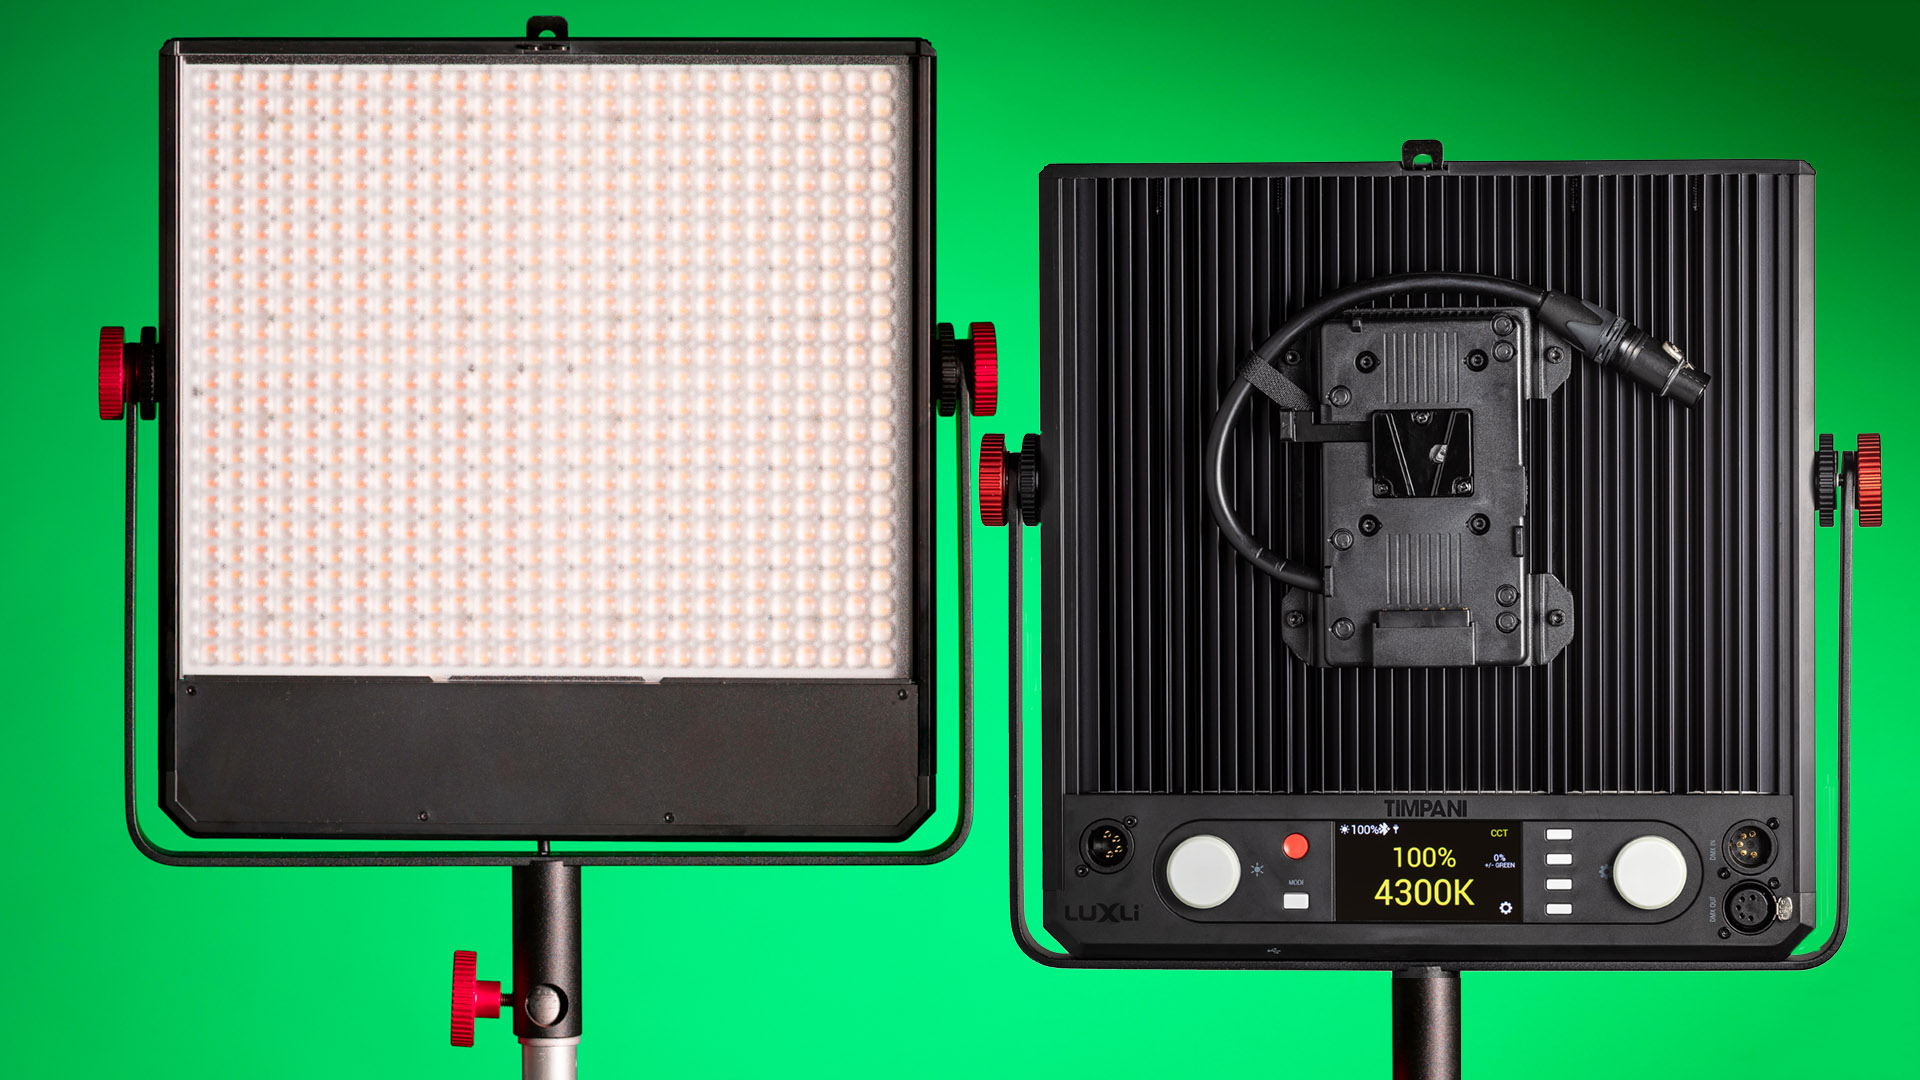 In-depth: Luxli's Timpani LED ultra versatile luminaire